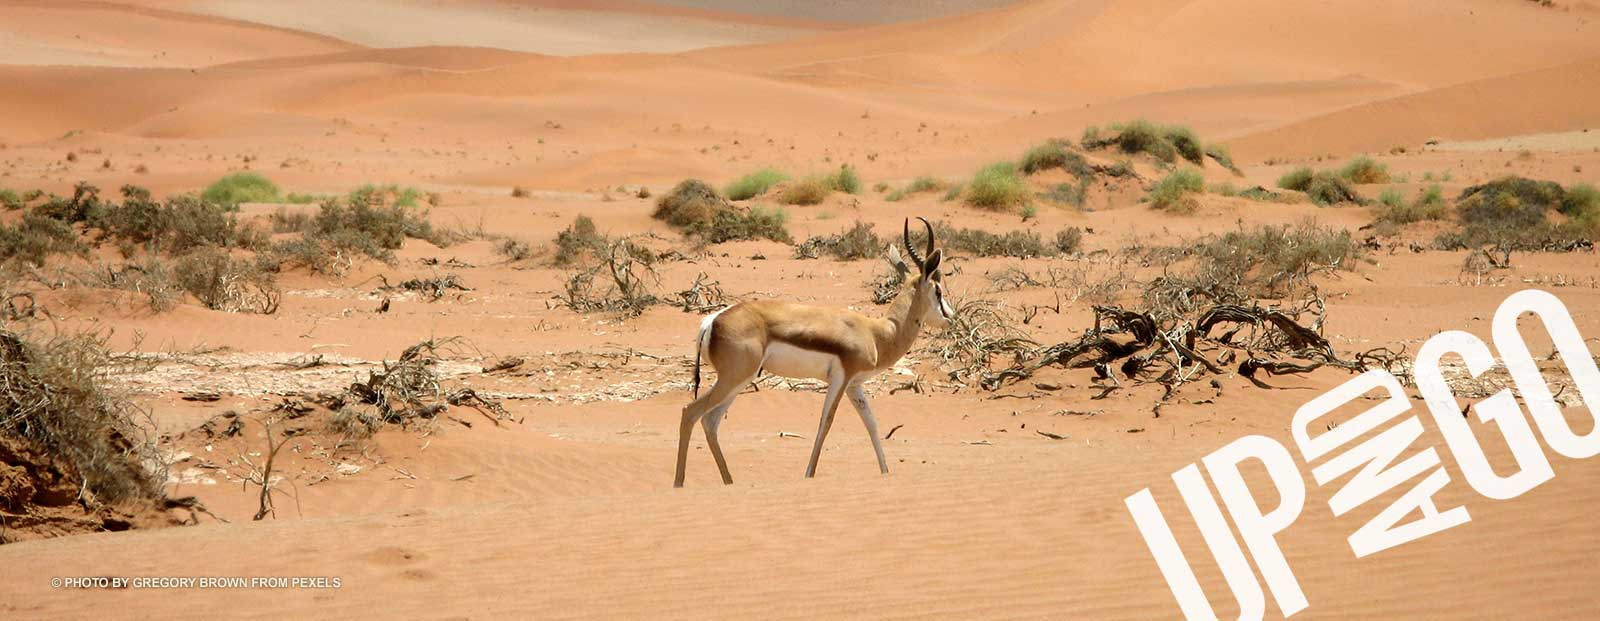 Upandgo Accommodation Namibia African Safari Wildlife